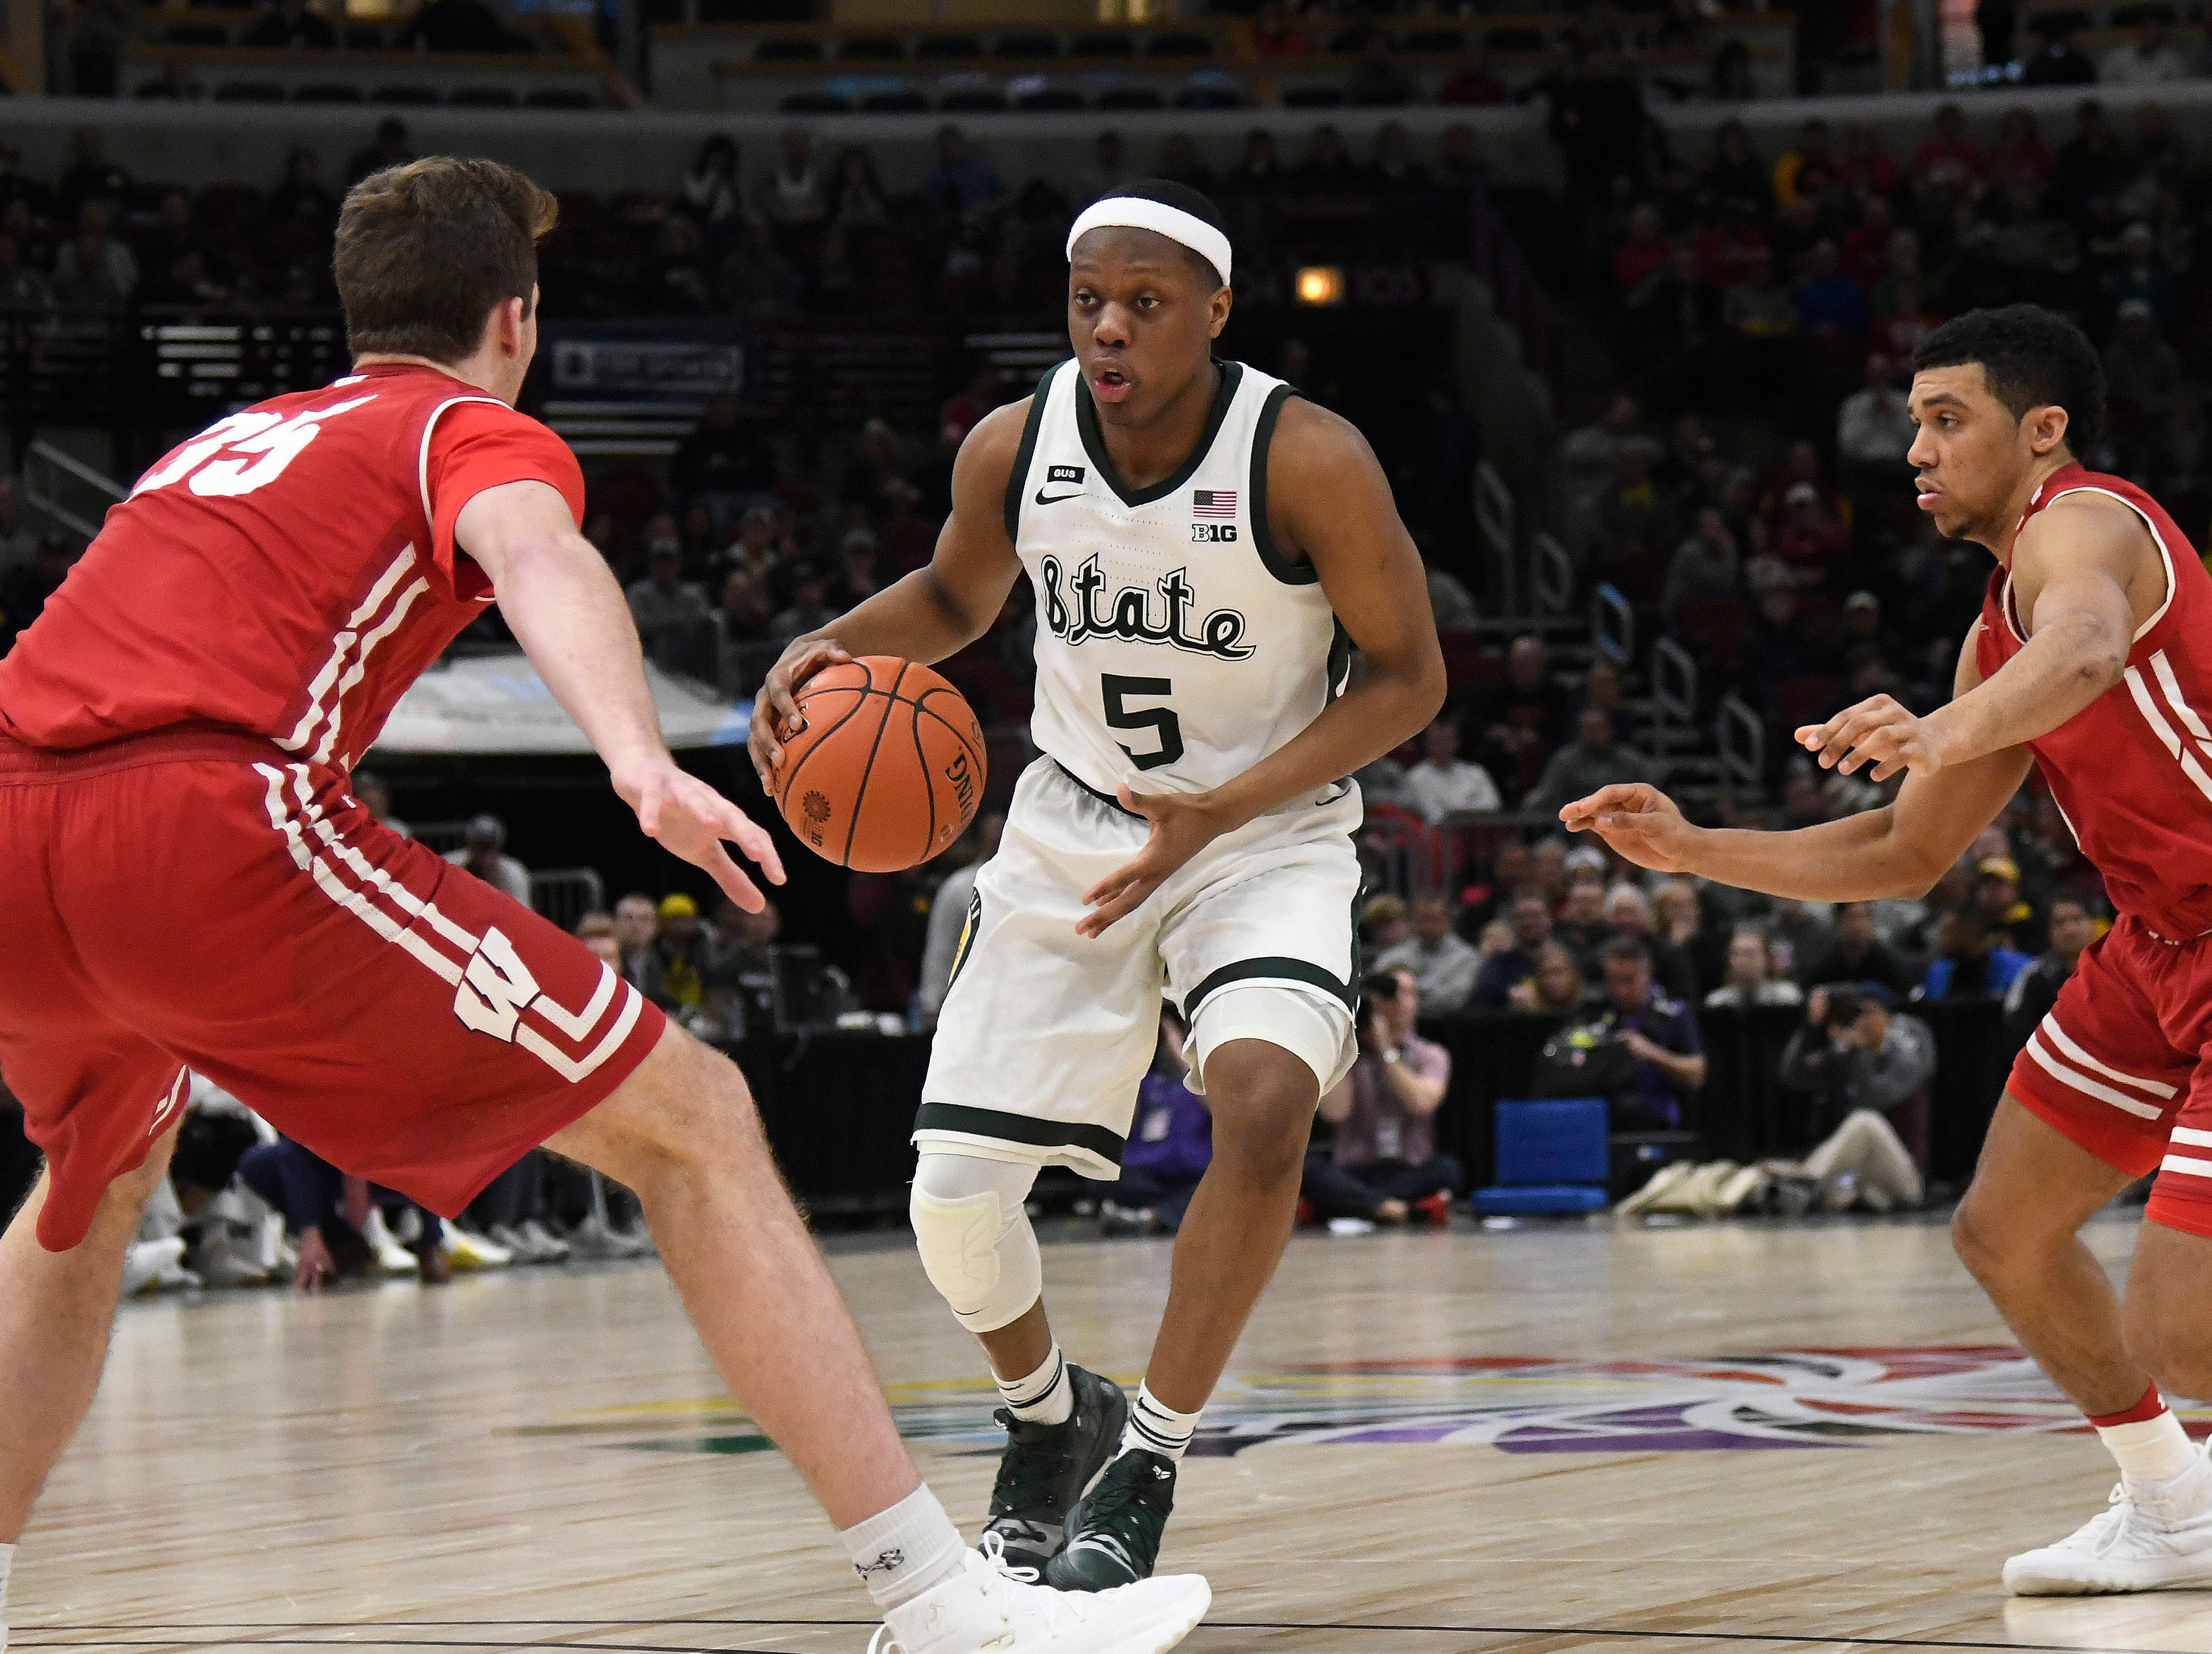 Michigan State Spartans guard Cassius Winston (5) dribbles the ball as Wisconsin Badgers forward Nate Reuvers (35) and guard Khalil Iverson (21) defend during the second half in the Big Ten conference tournament at United Center.